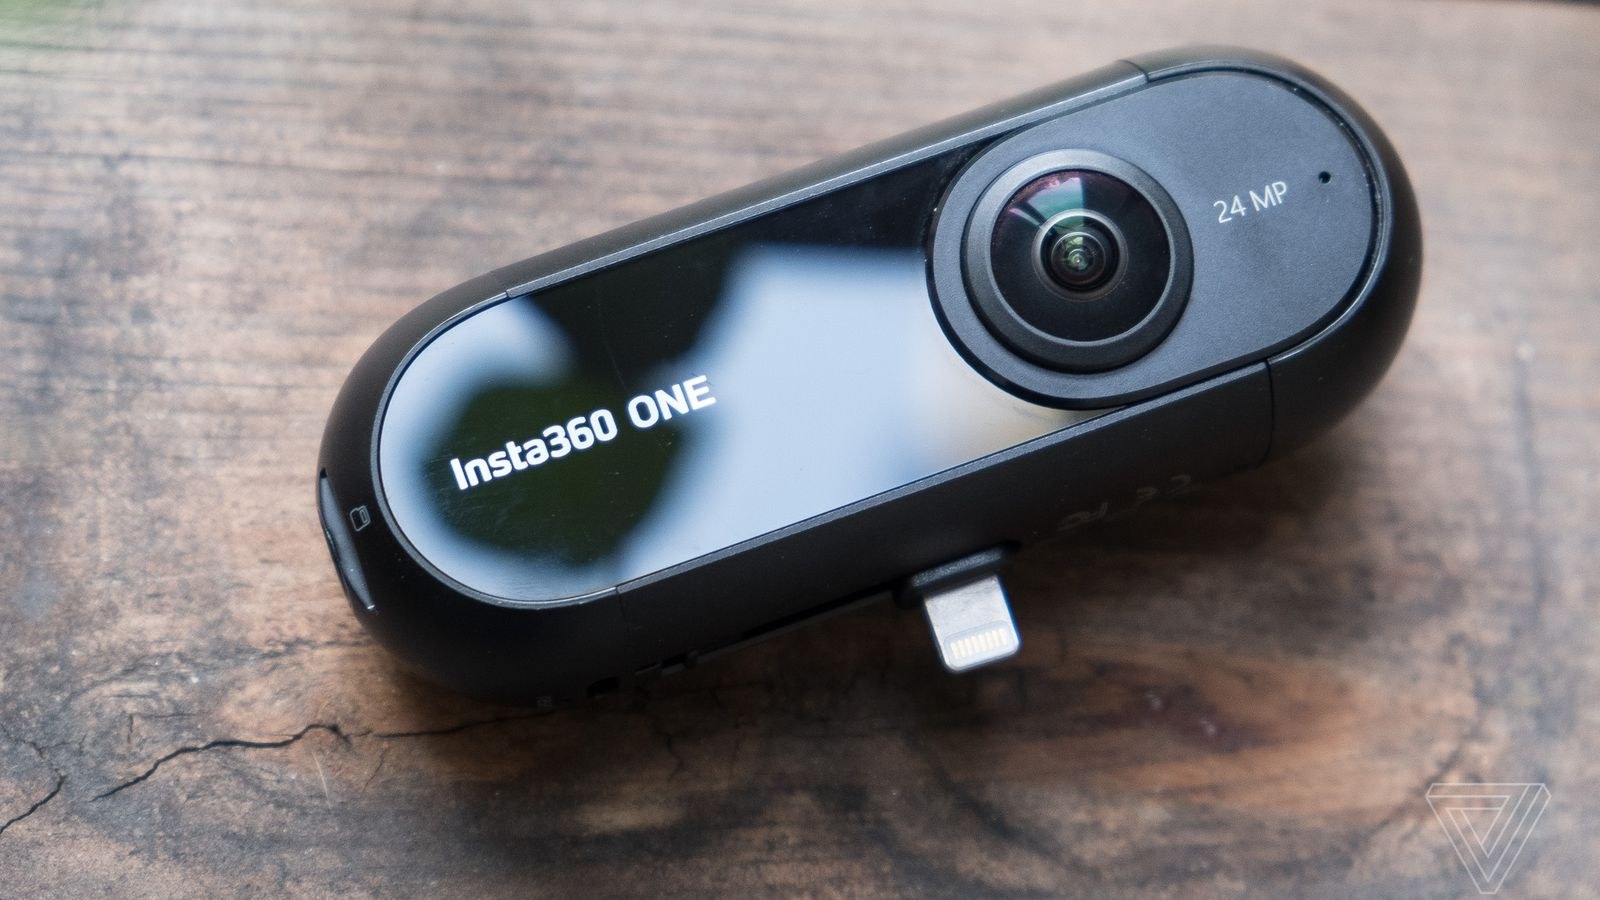 Insta360 One is a 360-degree camera with a really clever trick up its sleeve